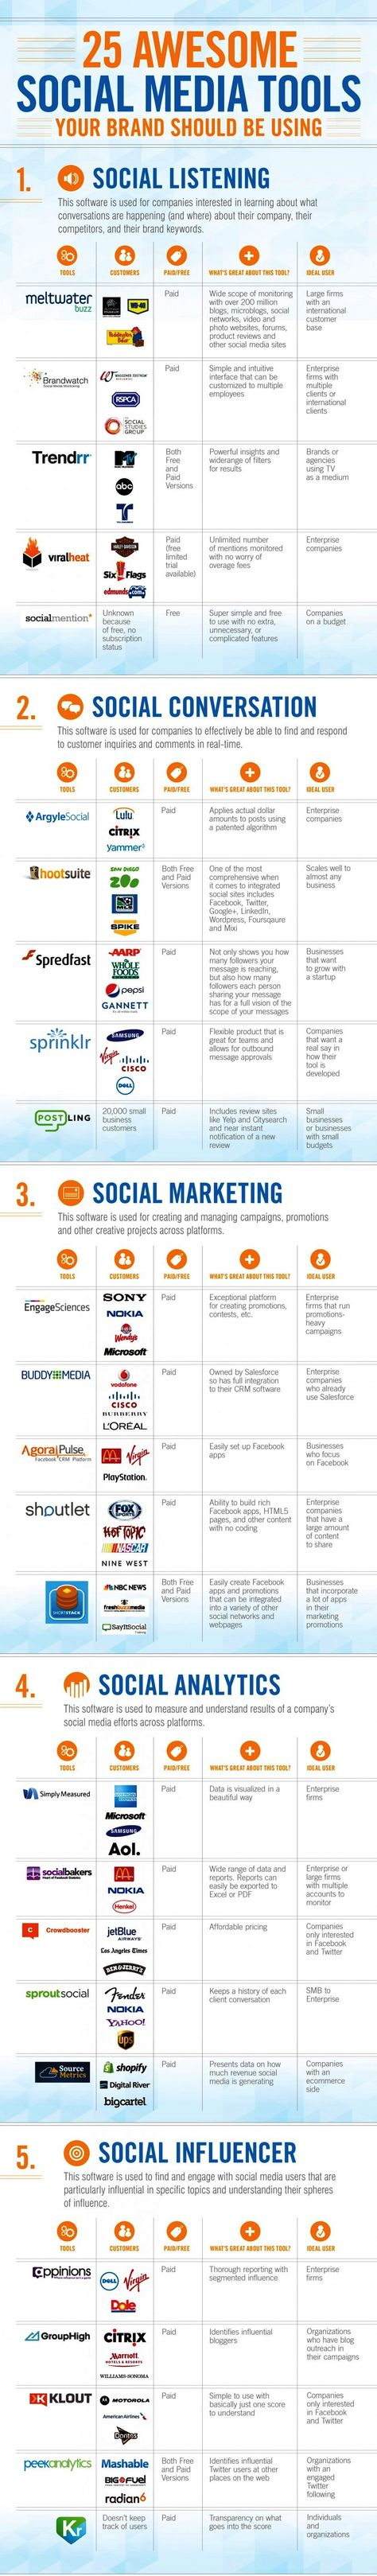 25 Social Media Tools Your Brand Should Be Using [Infographic]